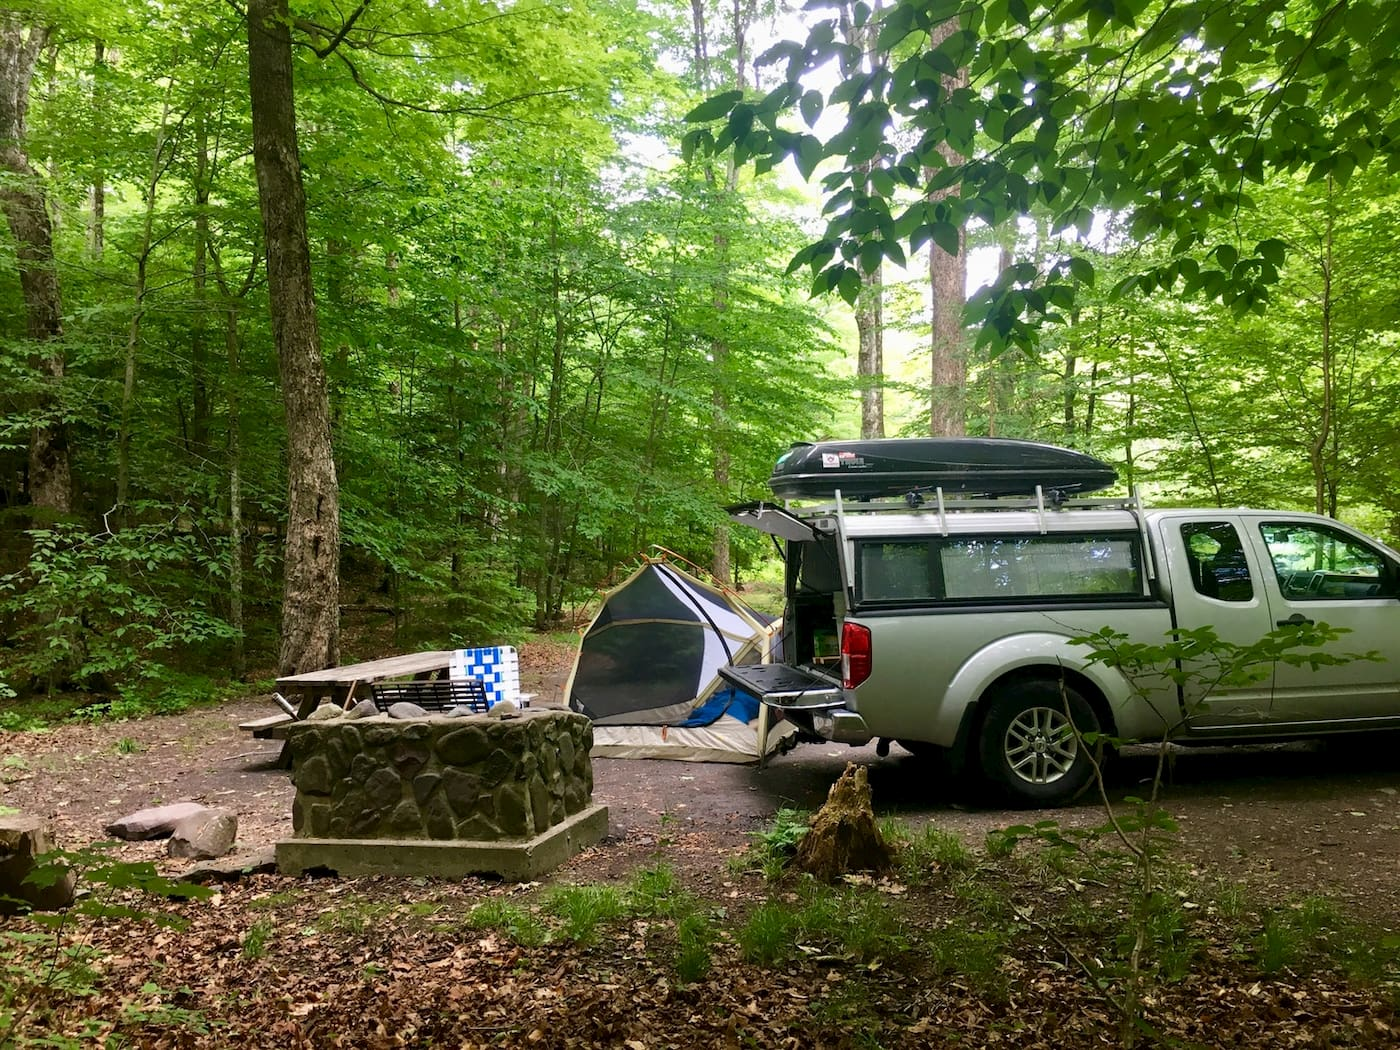 Campsite at Devil's Tombstone with firepit and tent.